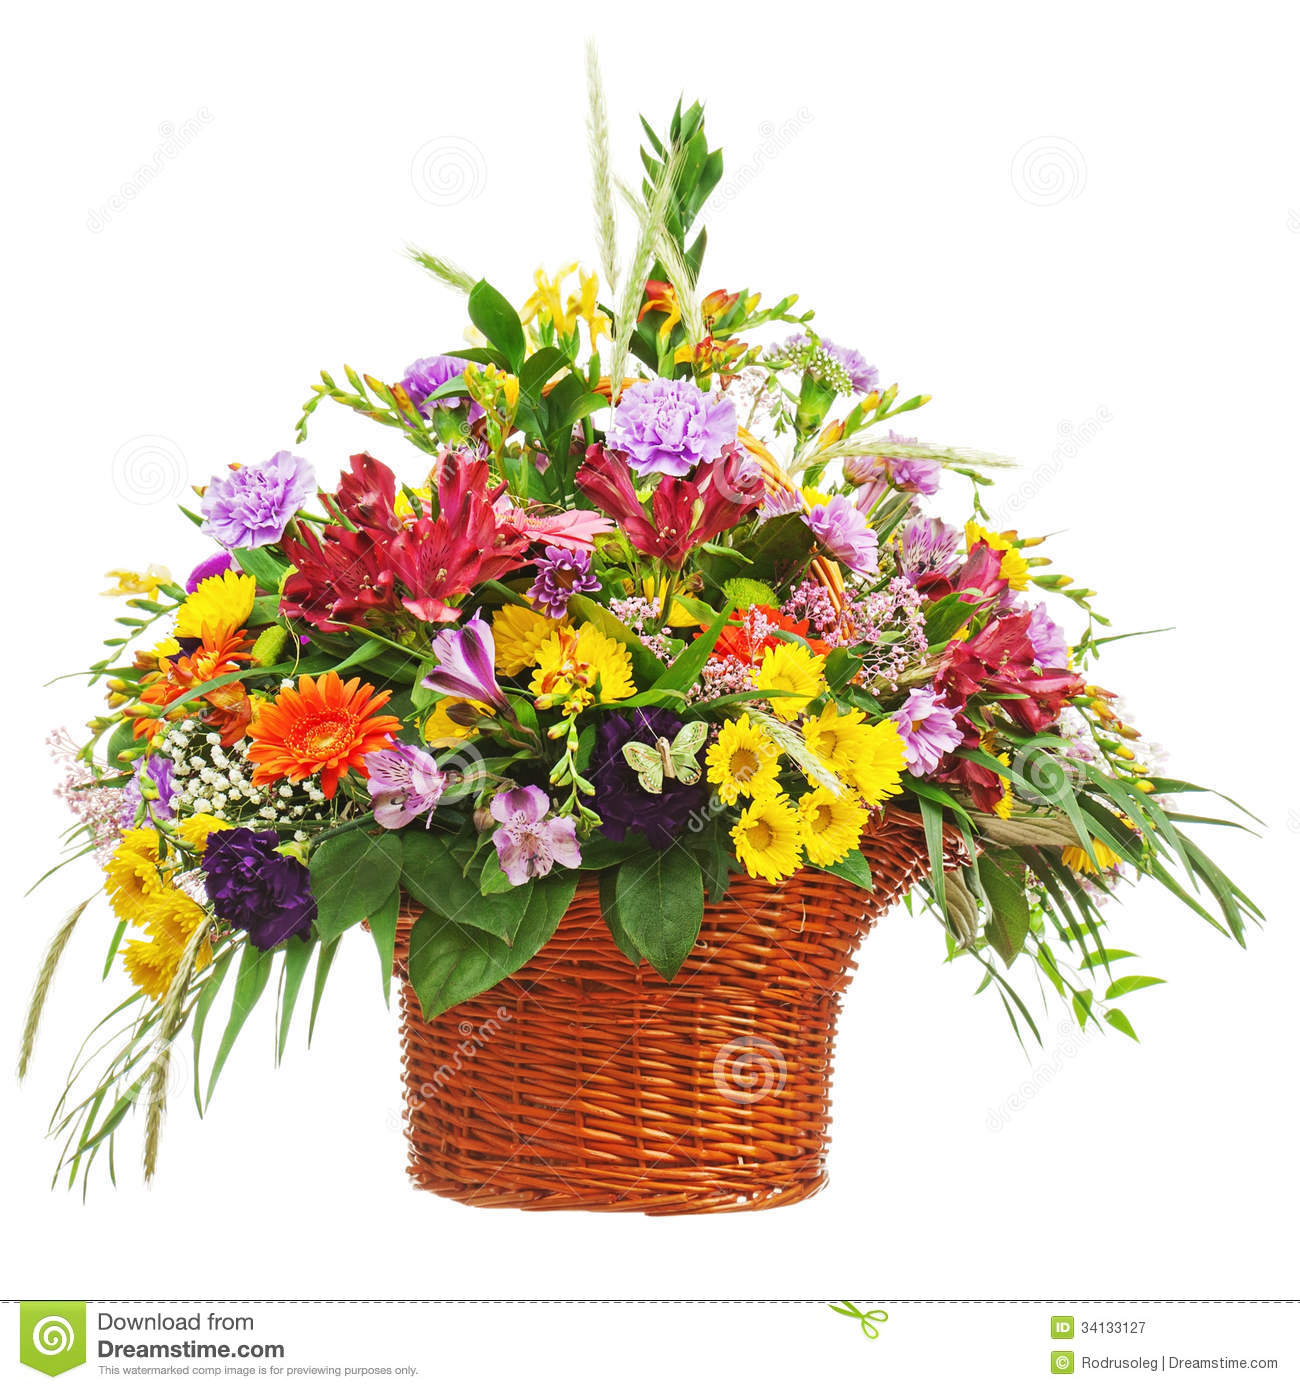 Pictures of flowers bouquet free banner freeuse download Flower Bouquet Arrangement Centerpiece In A Wicker Gift Basket ... banner freeuse download